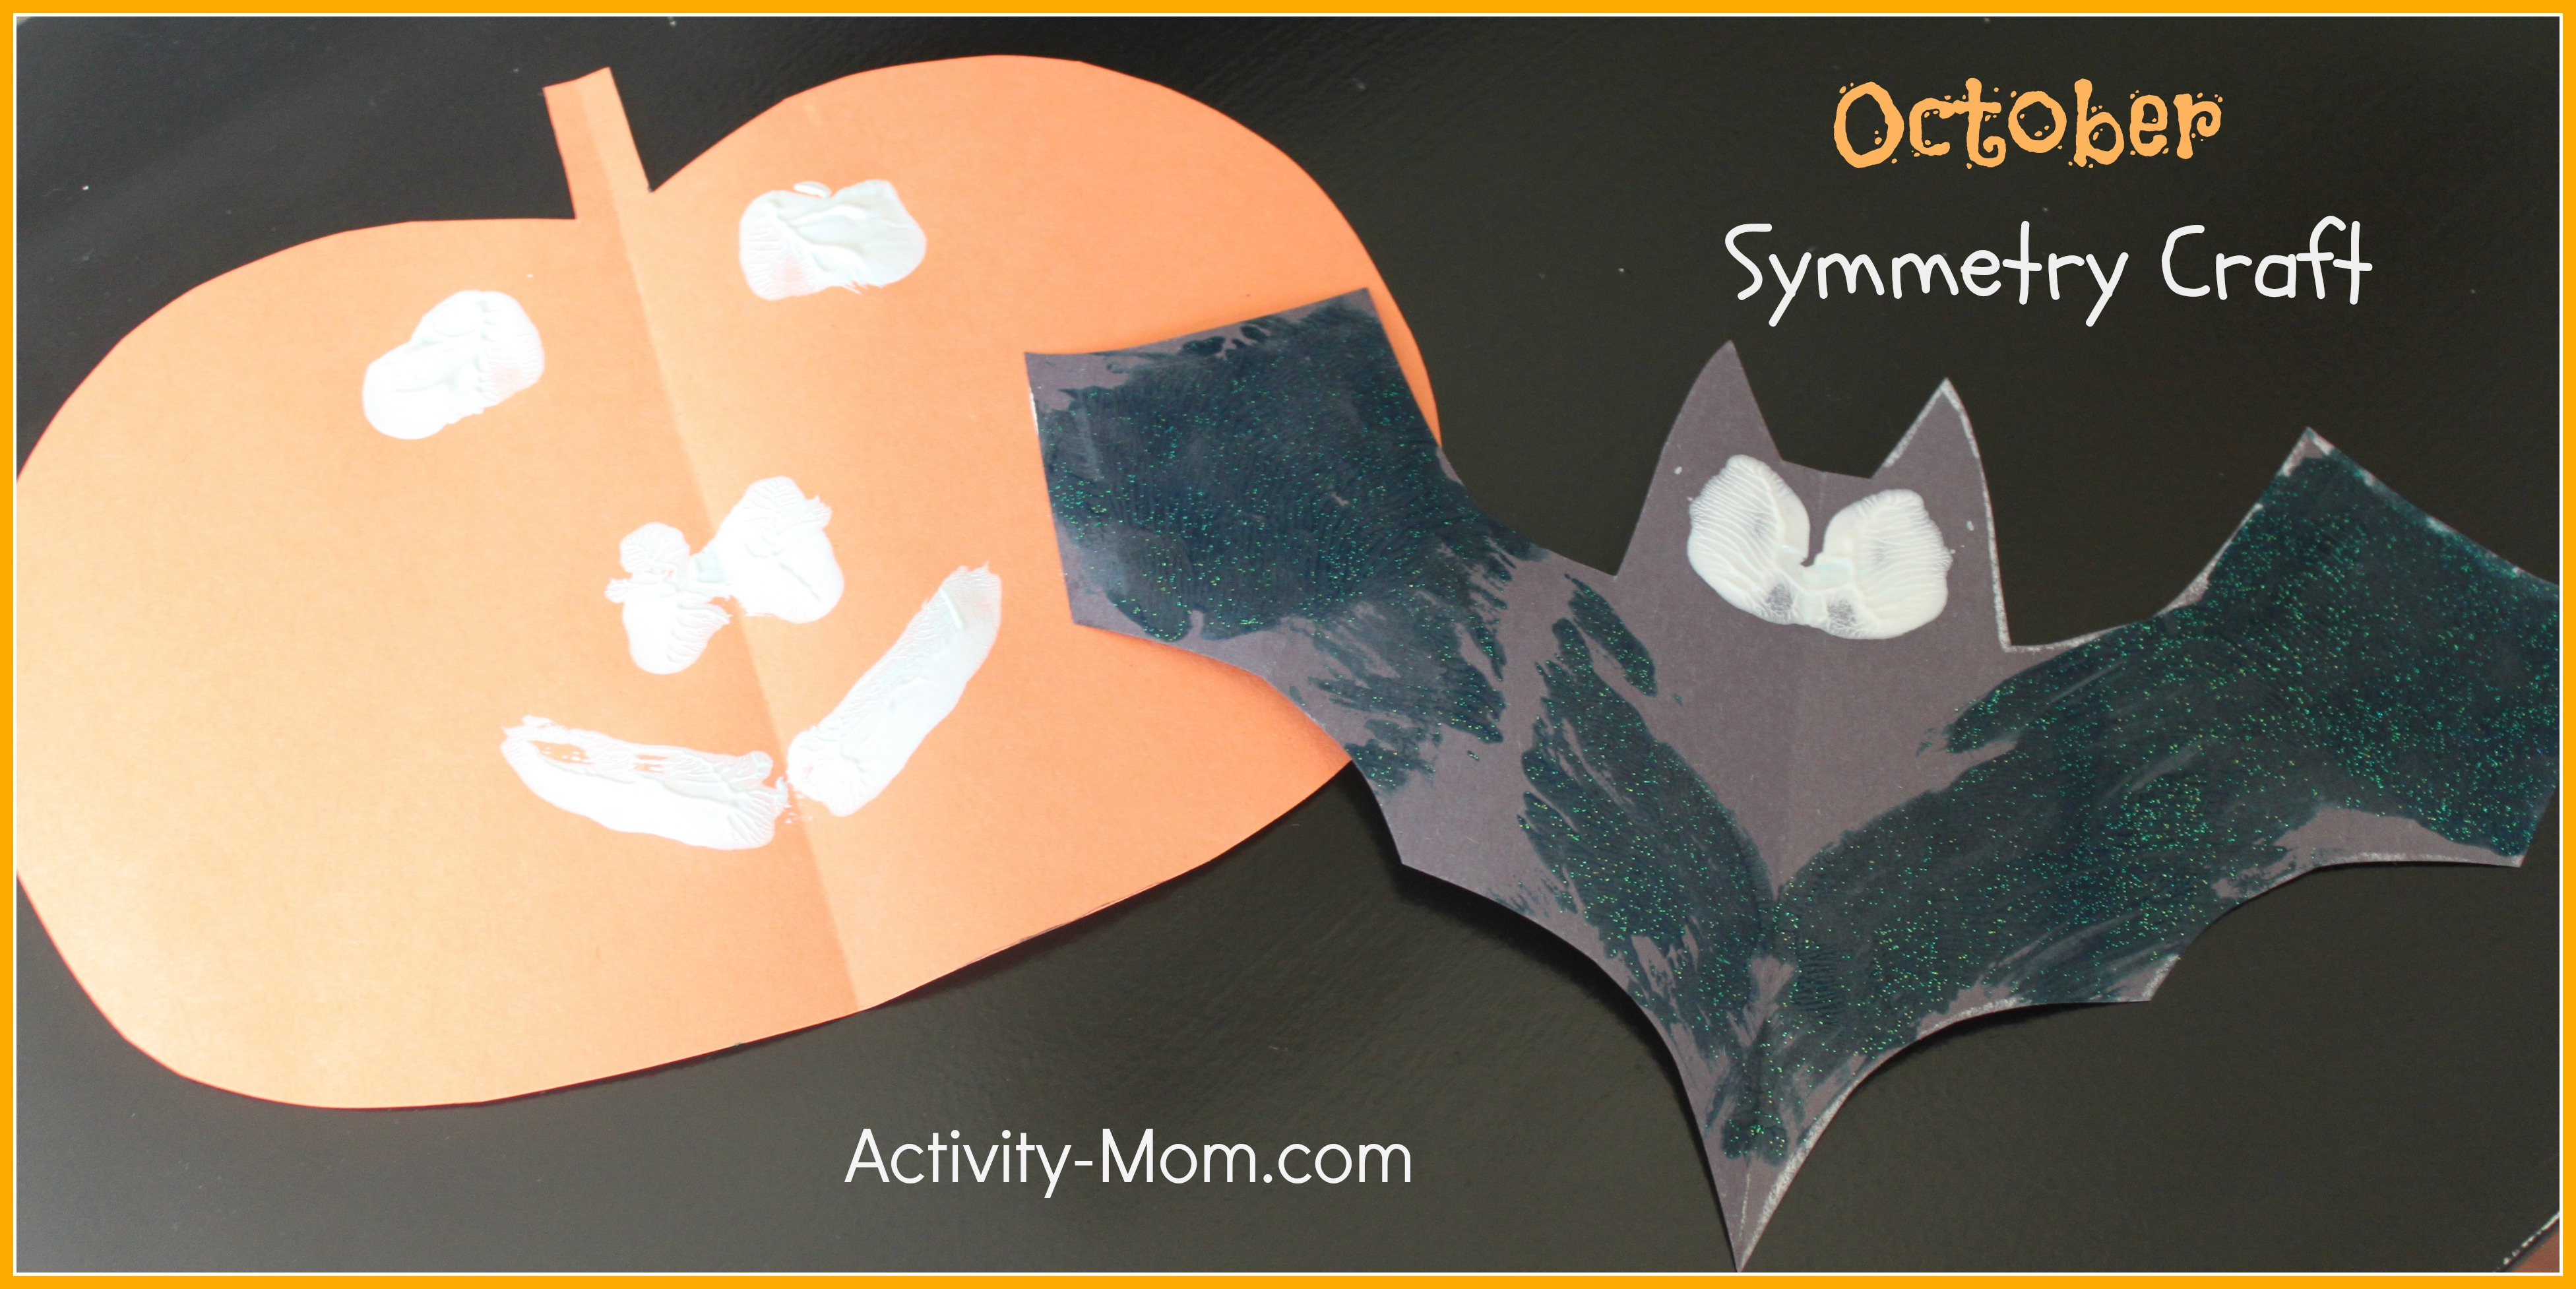 October Symmetry Craft